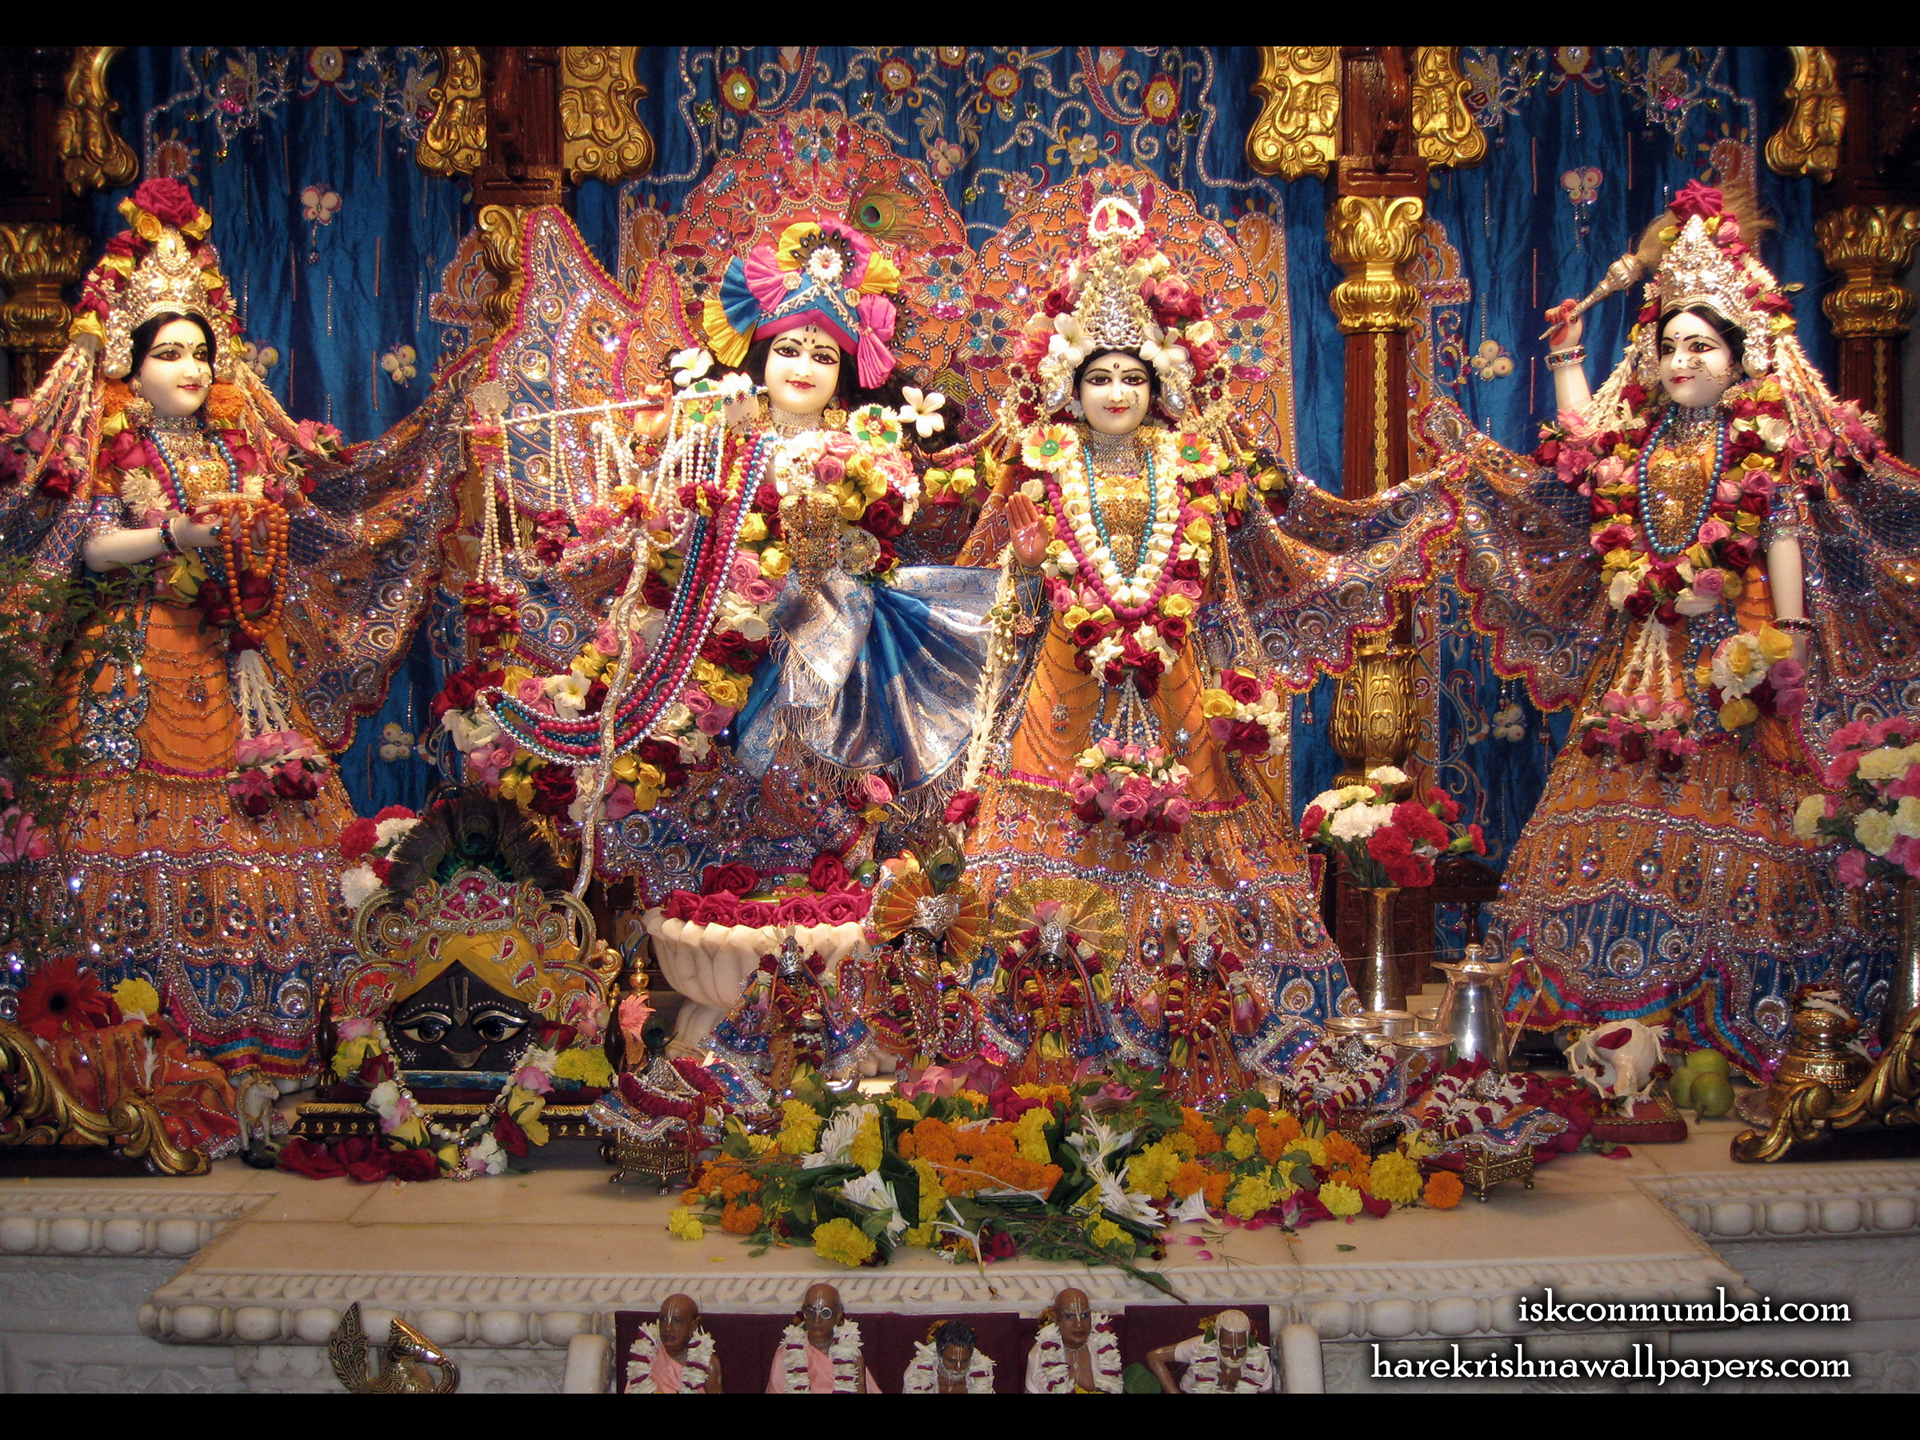 Sri Sri Radha Rasabihari Lalita Vishakha Wallpaper (007) Size 1920x1440 Download